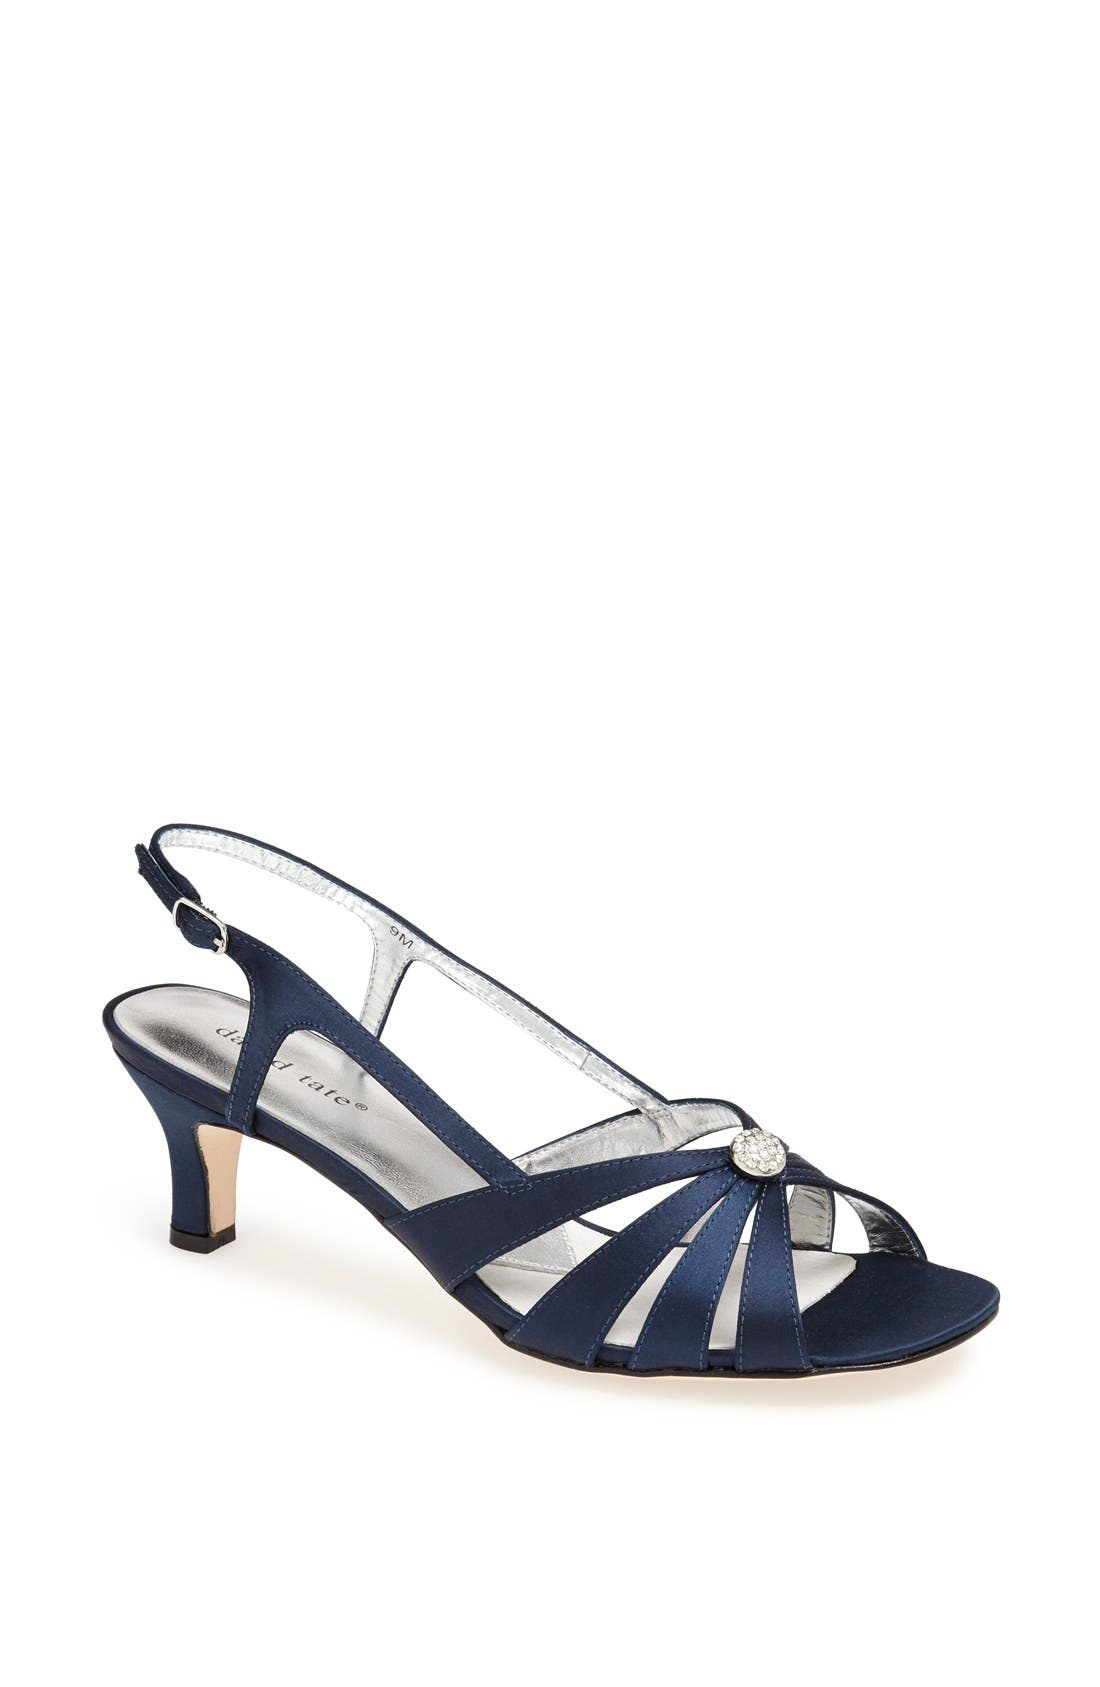 'Rosette' Sandal,                         Main,                         color, NAVY